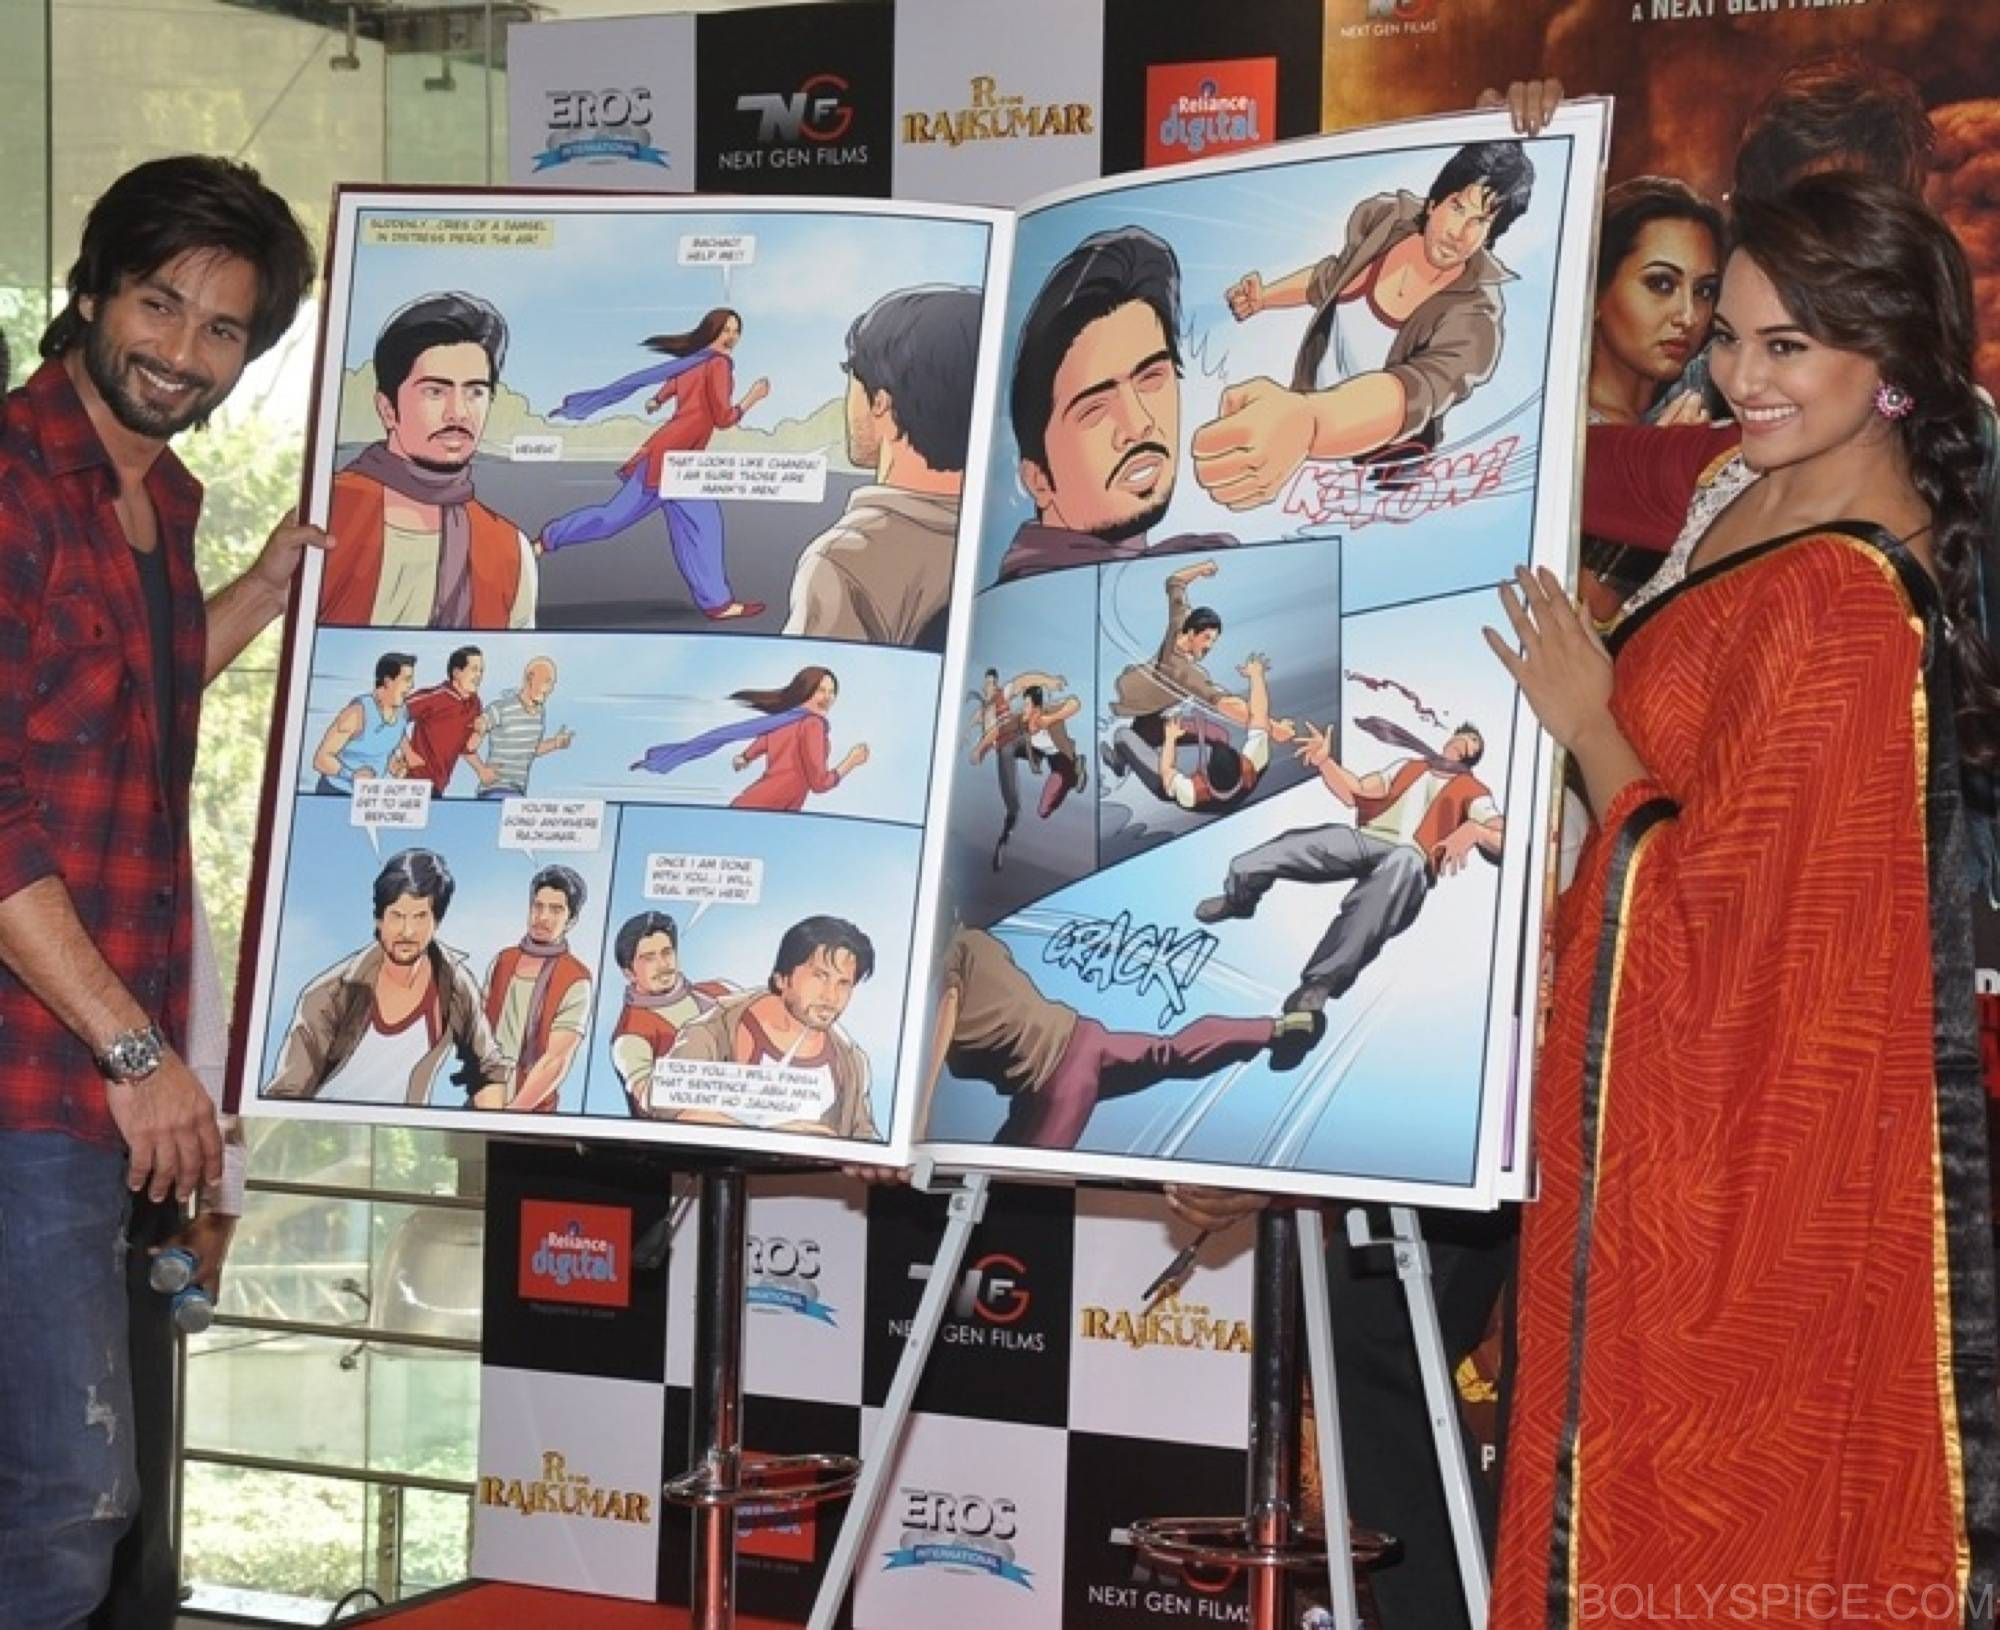 R...Rajkumar custom comic launch 3 R...Rajkumar presents India's first Custom Comic